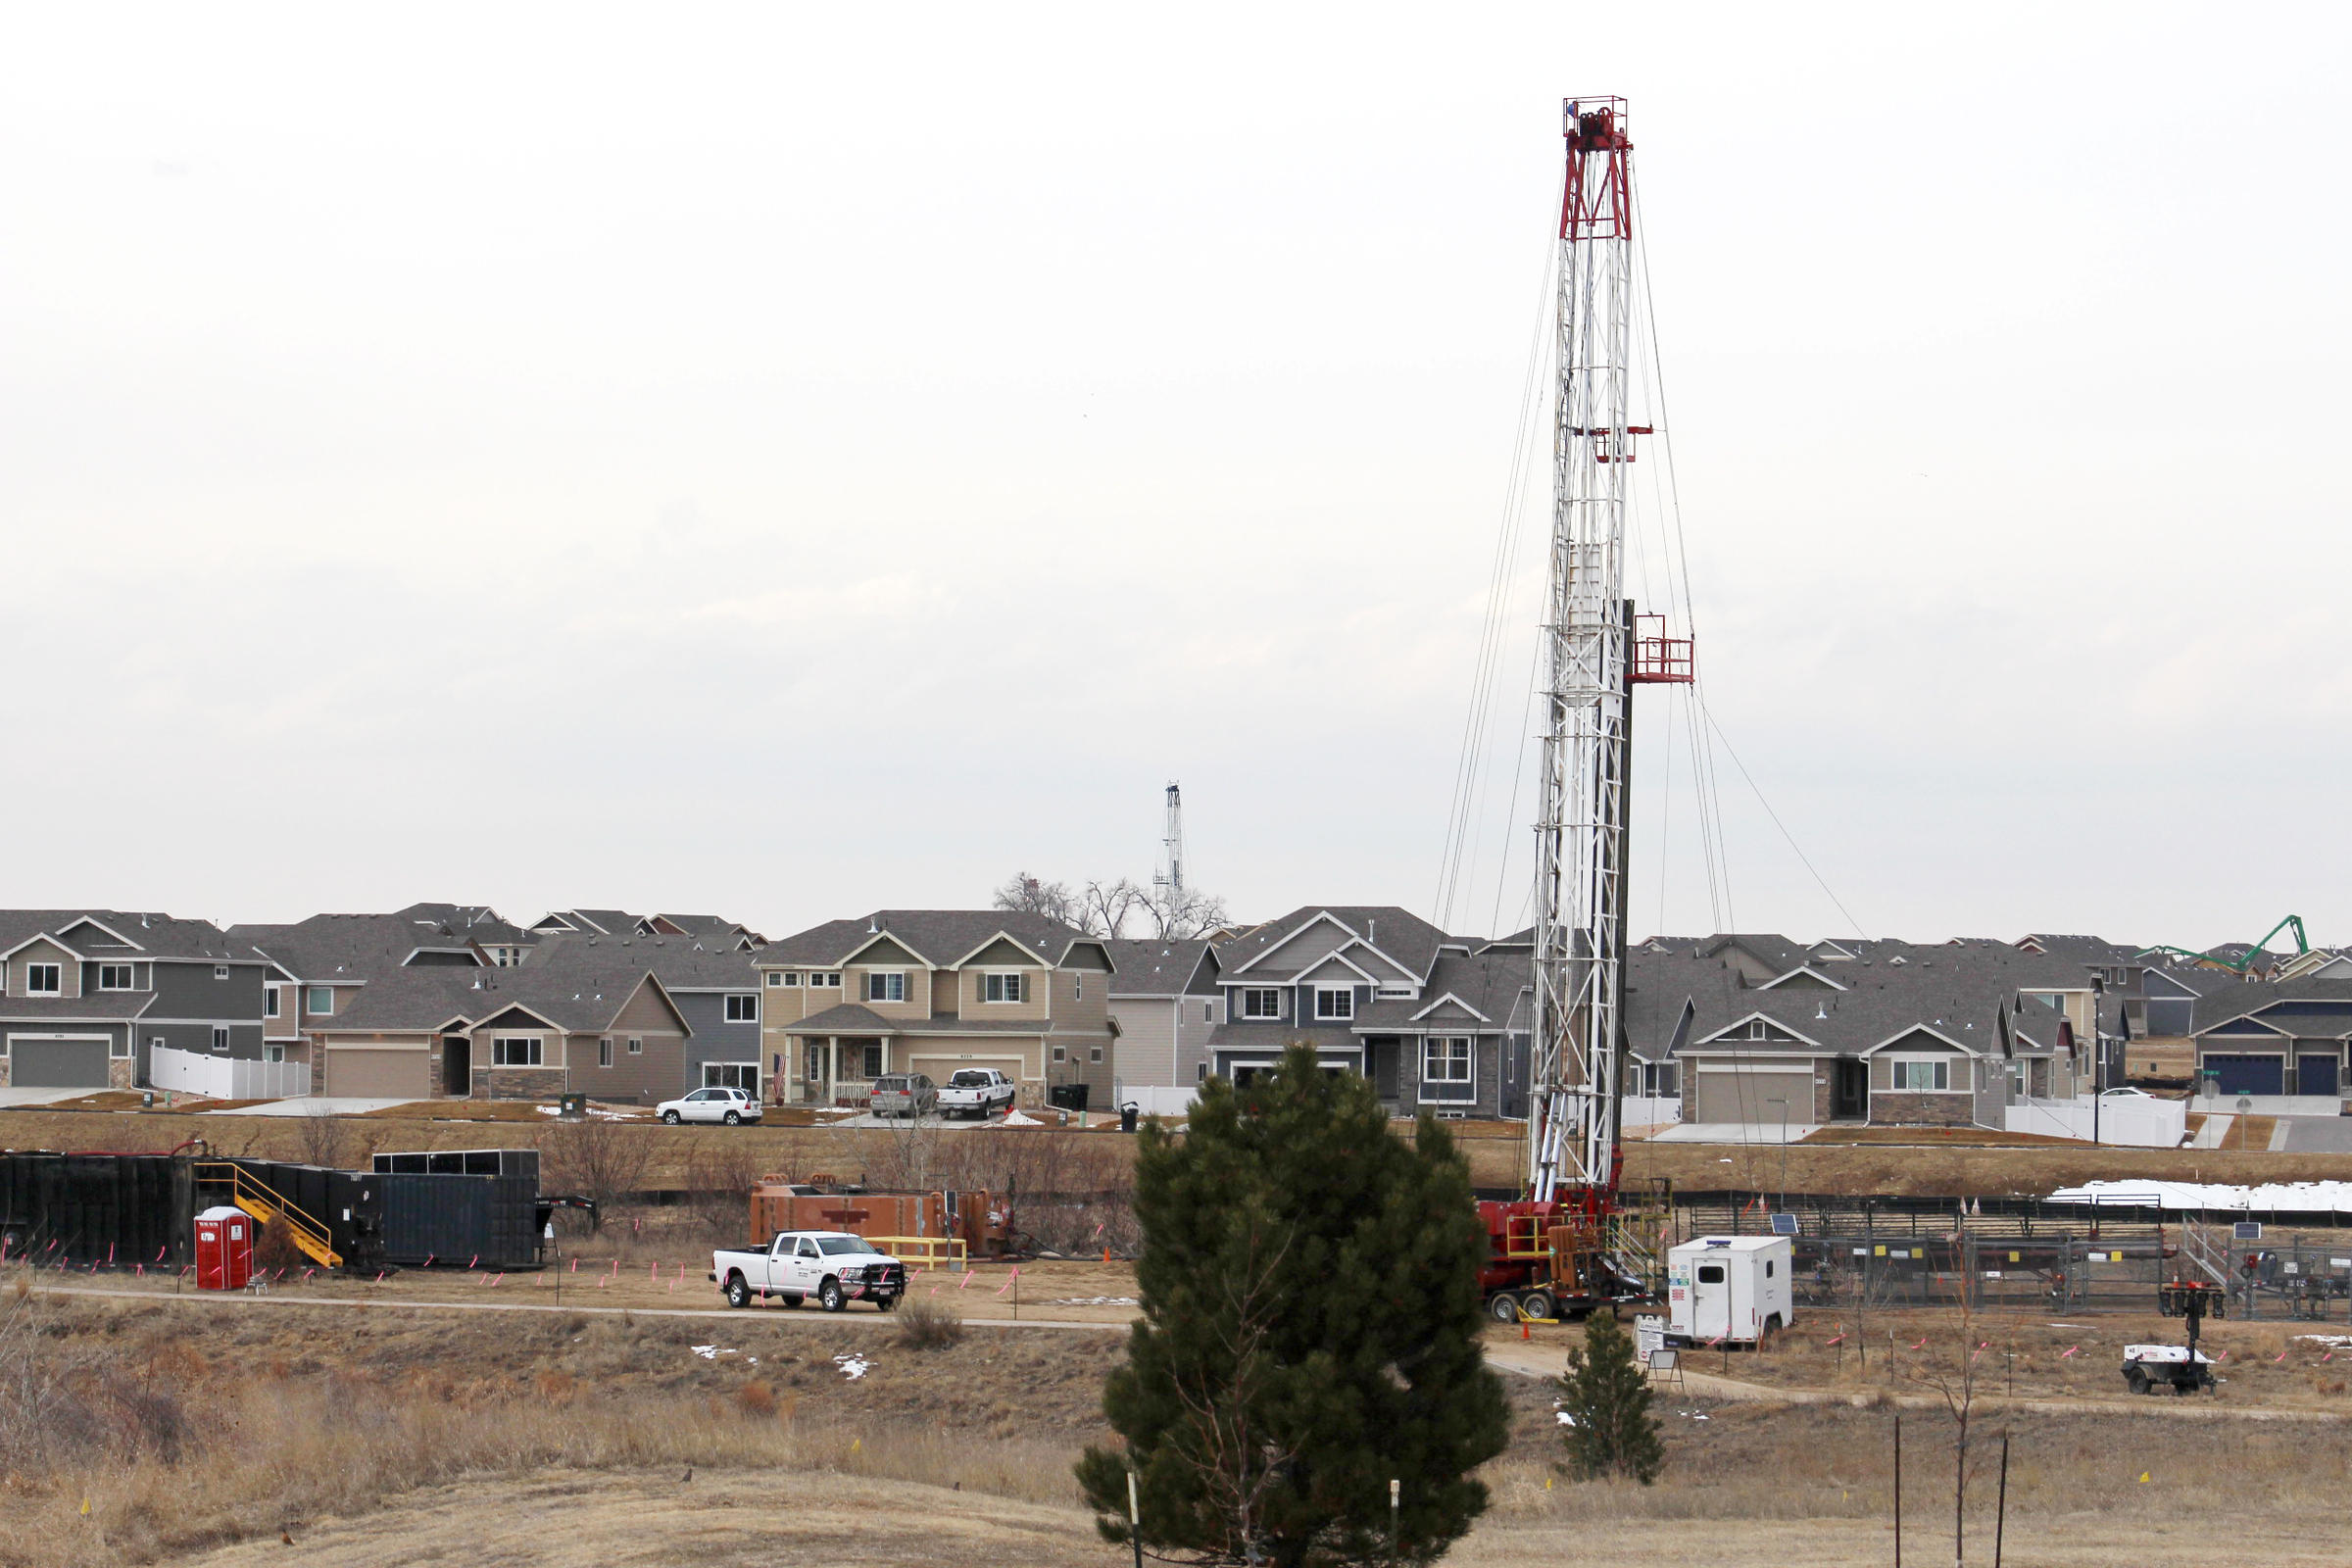 Wondrous Heres Whats At Stake As Colorado Debates Oil And Gas Download Free Architecture Designs Scobabritishbridgeorg